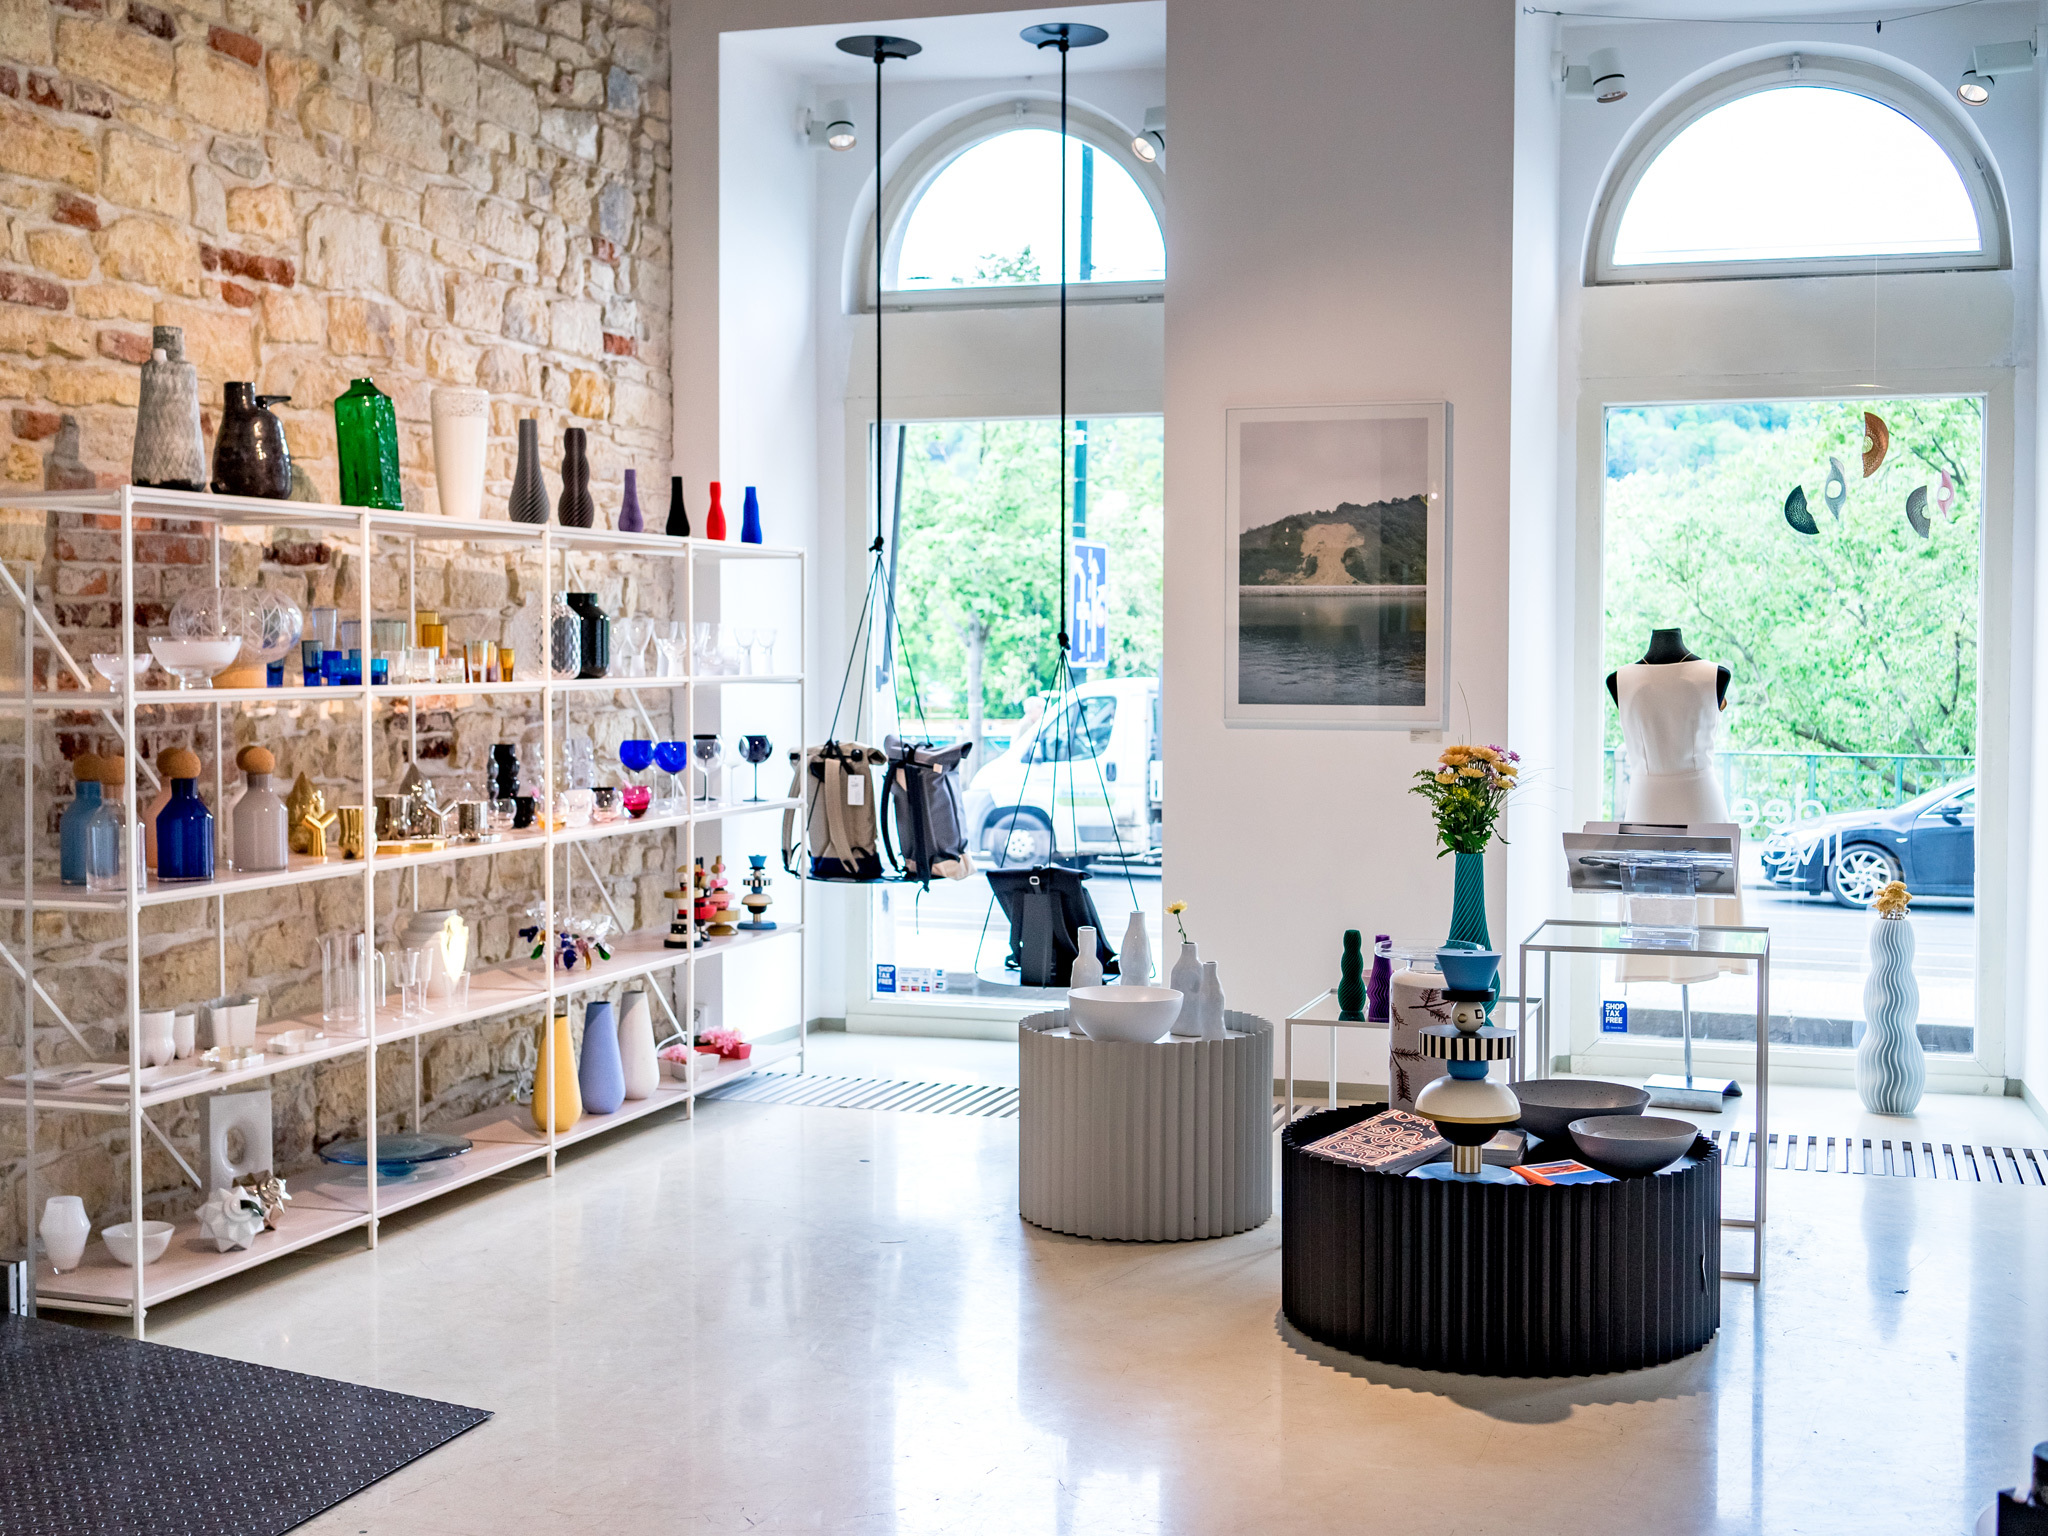 The interior of Deelive Designs in Prague